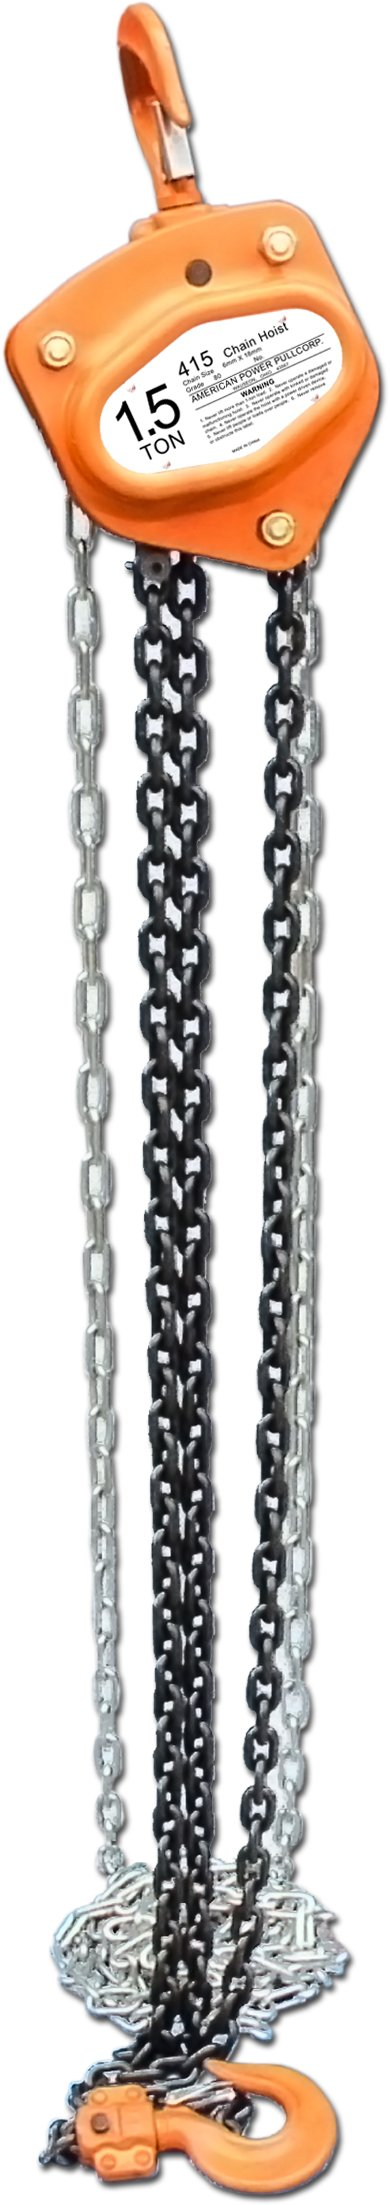 American Power Pull 415 Chain Block, 1-1/2-Ton